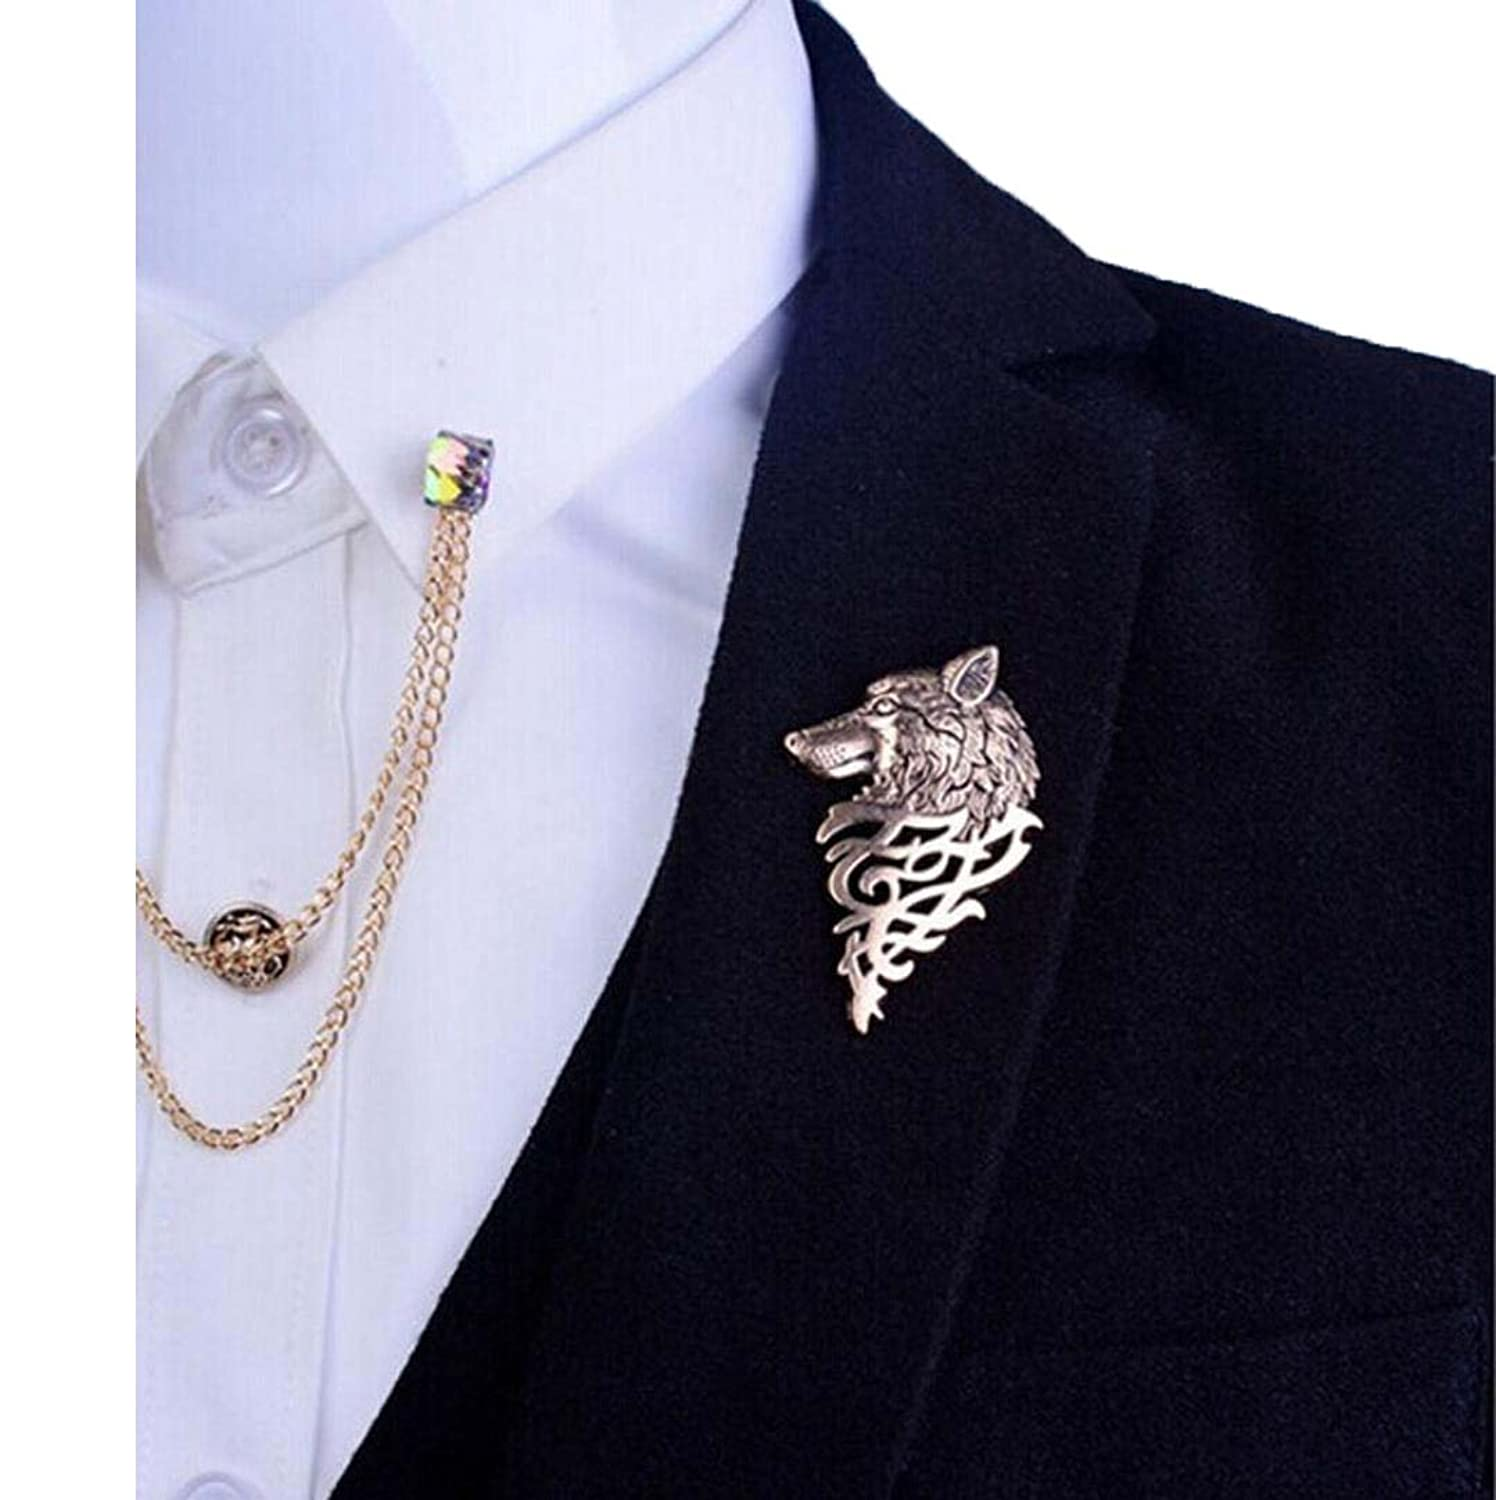 domineering toctai personalities head a net brooch s accessories deduction brooches coat shawl home pin sweater broche suit men for